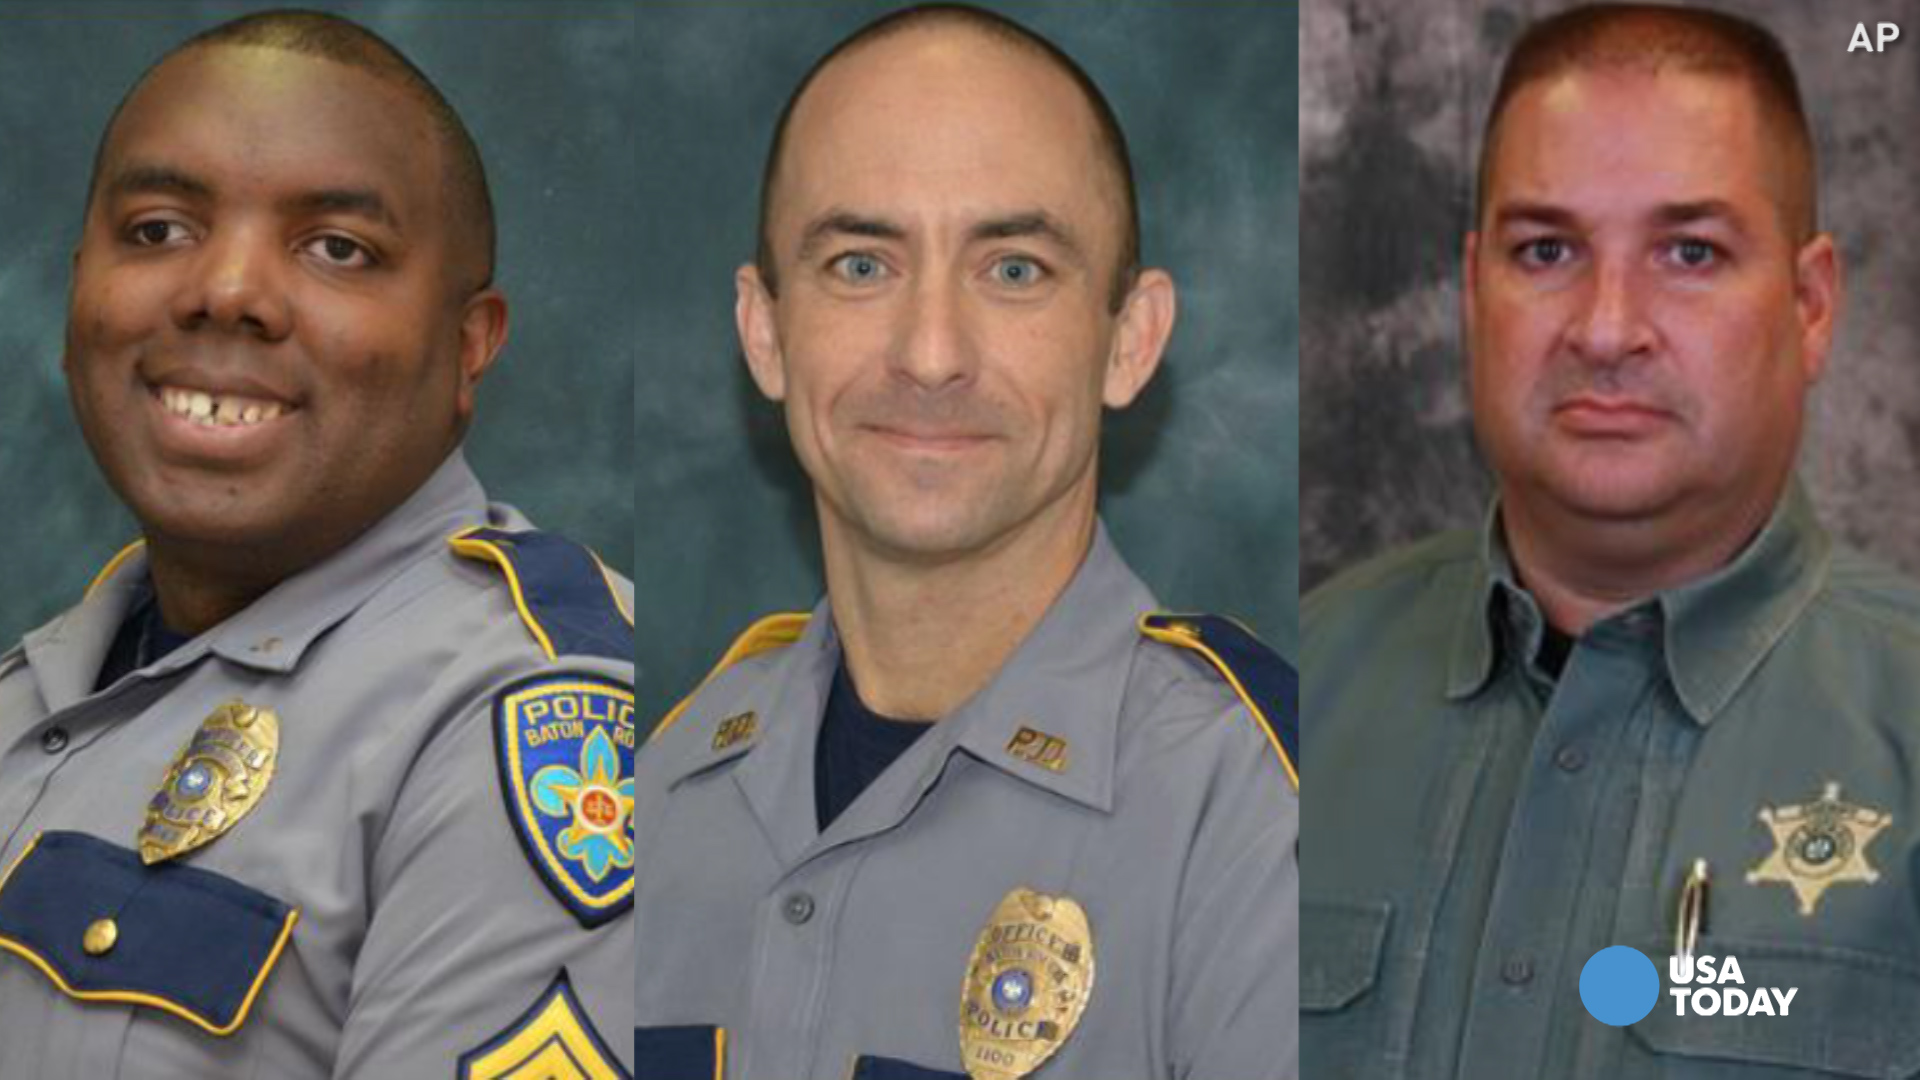 Slain Baton Rouge officers were loving husbands, dads